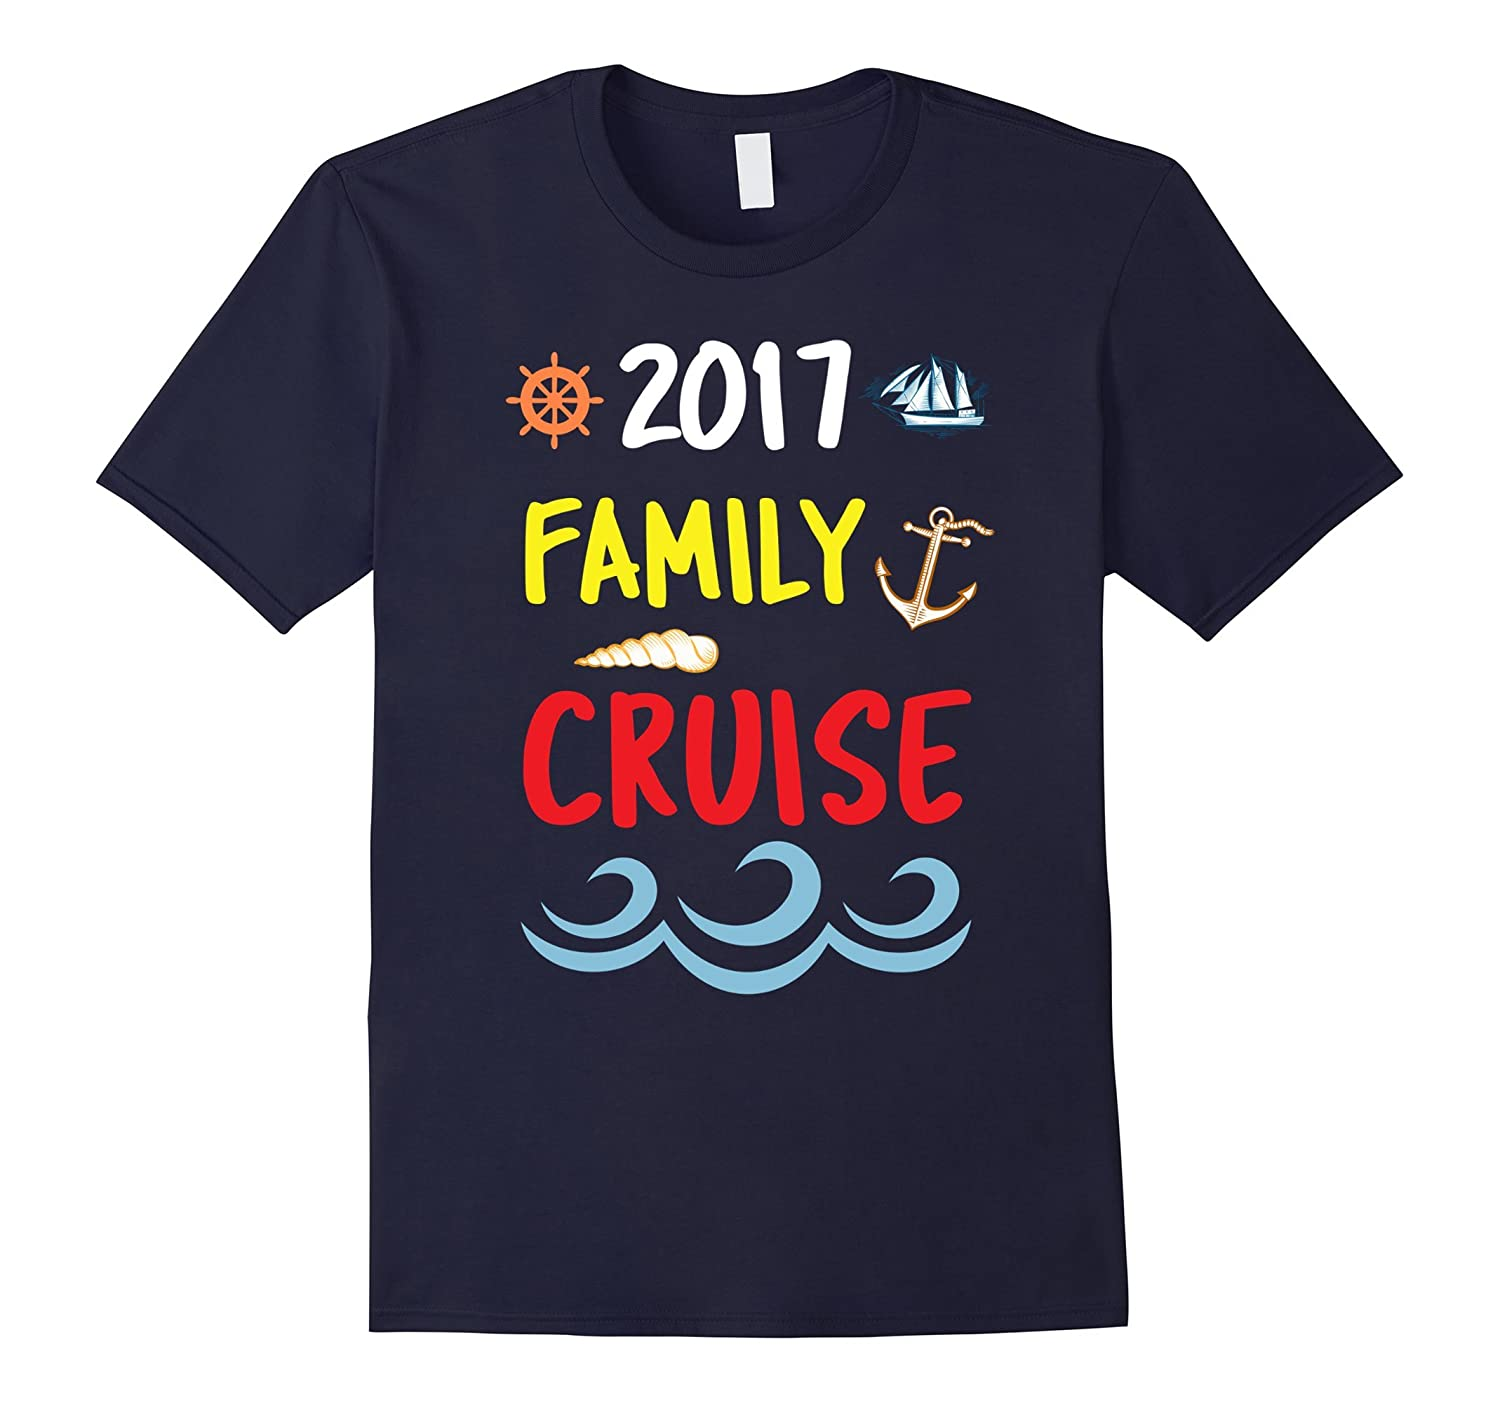 2017 Family Cruise boat Tshirt-TH